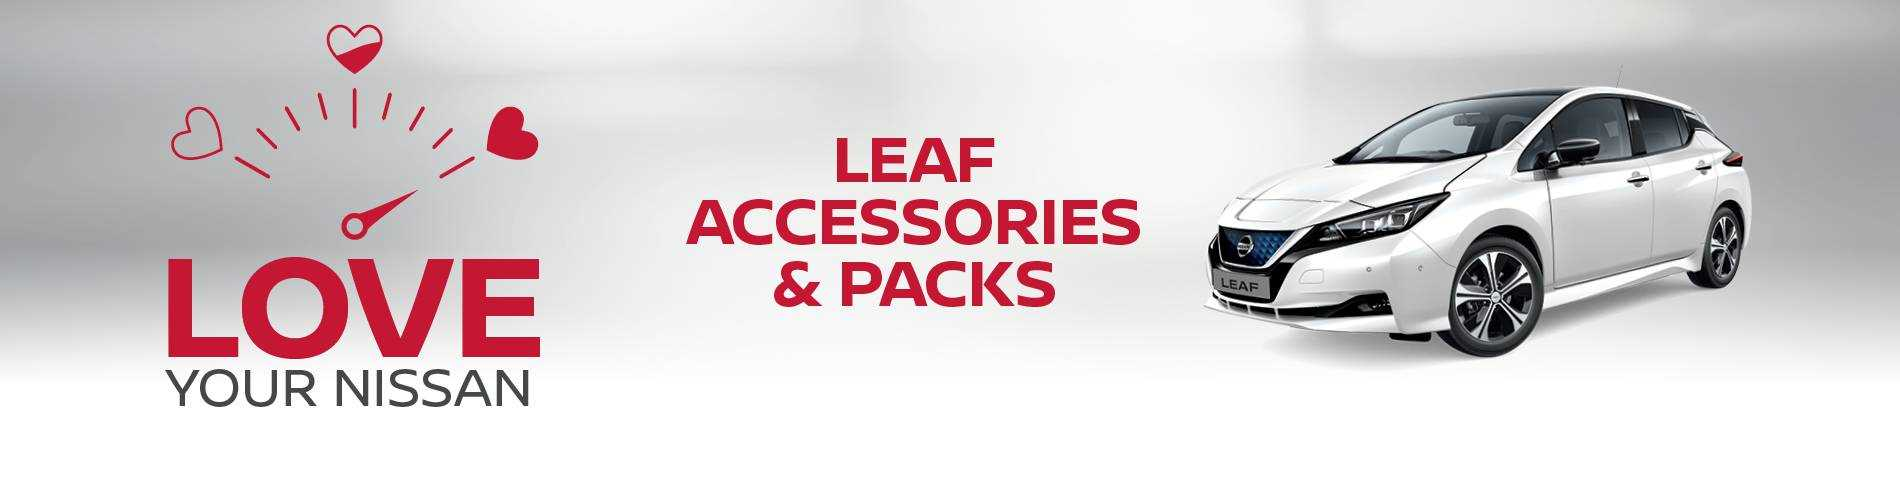 Leaf Accessories and Packs